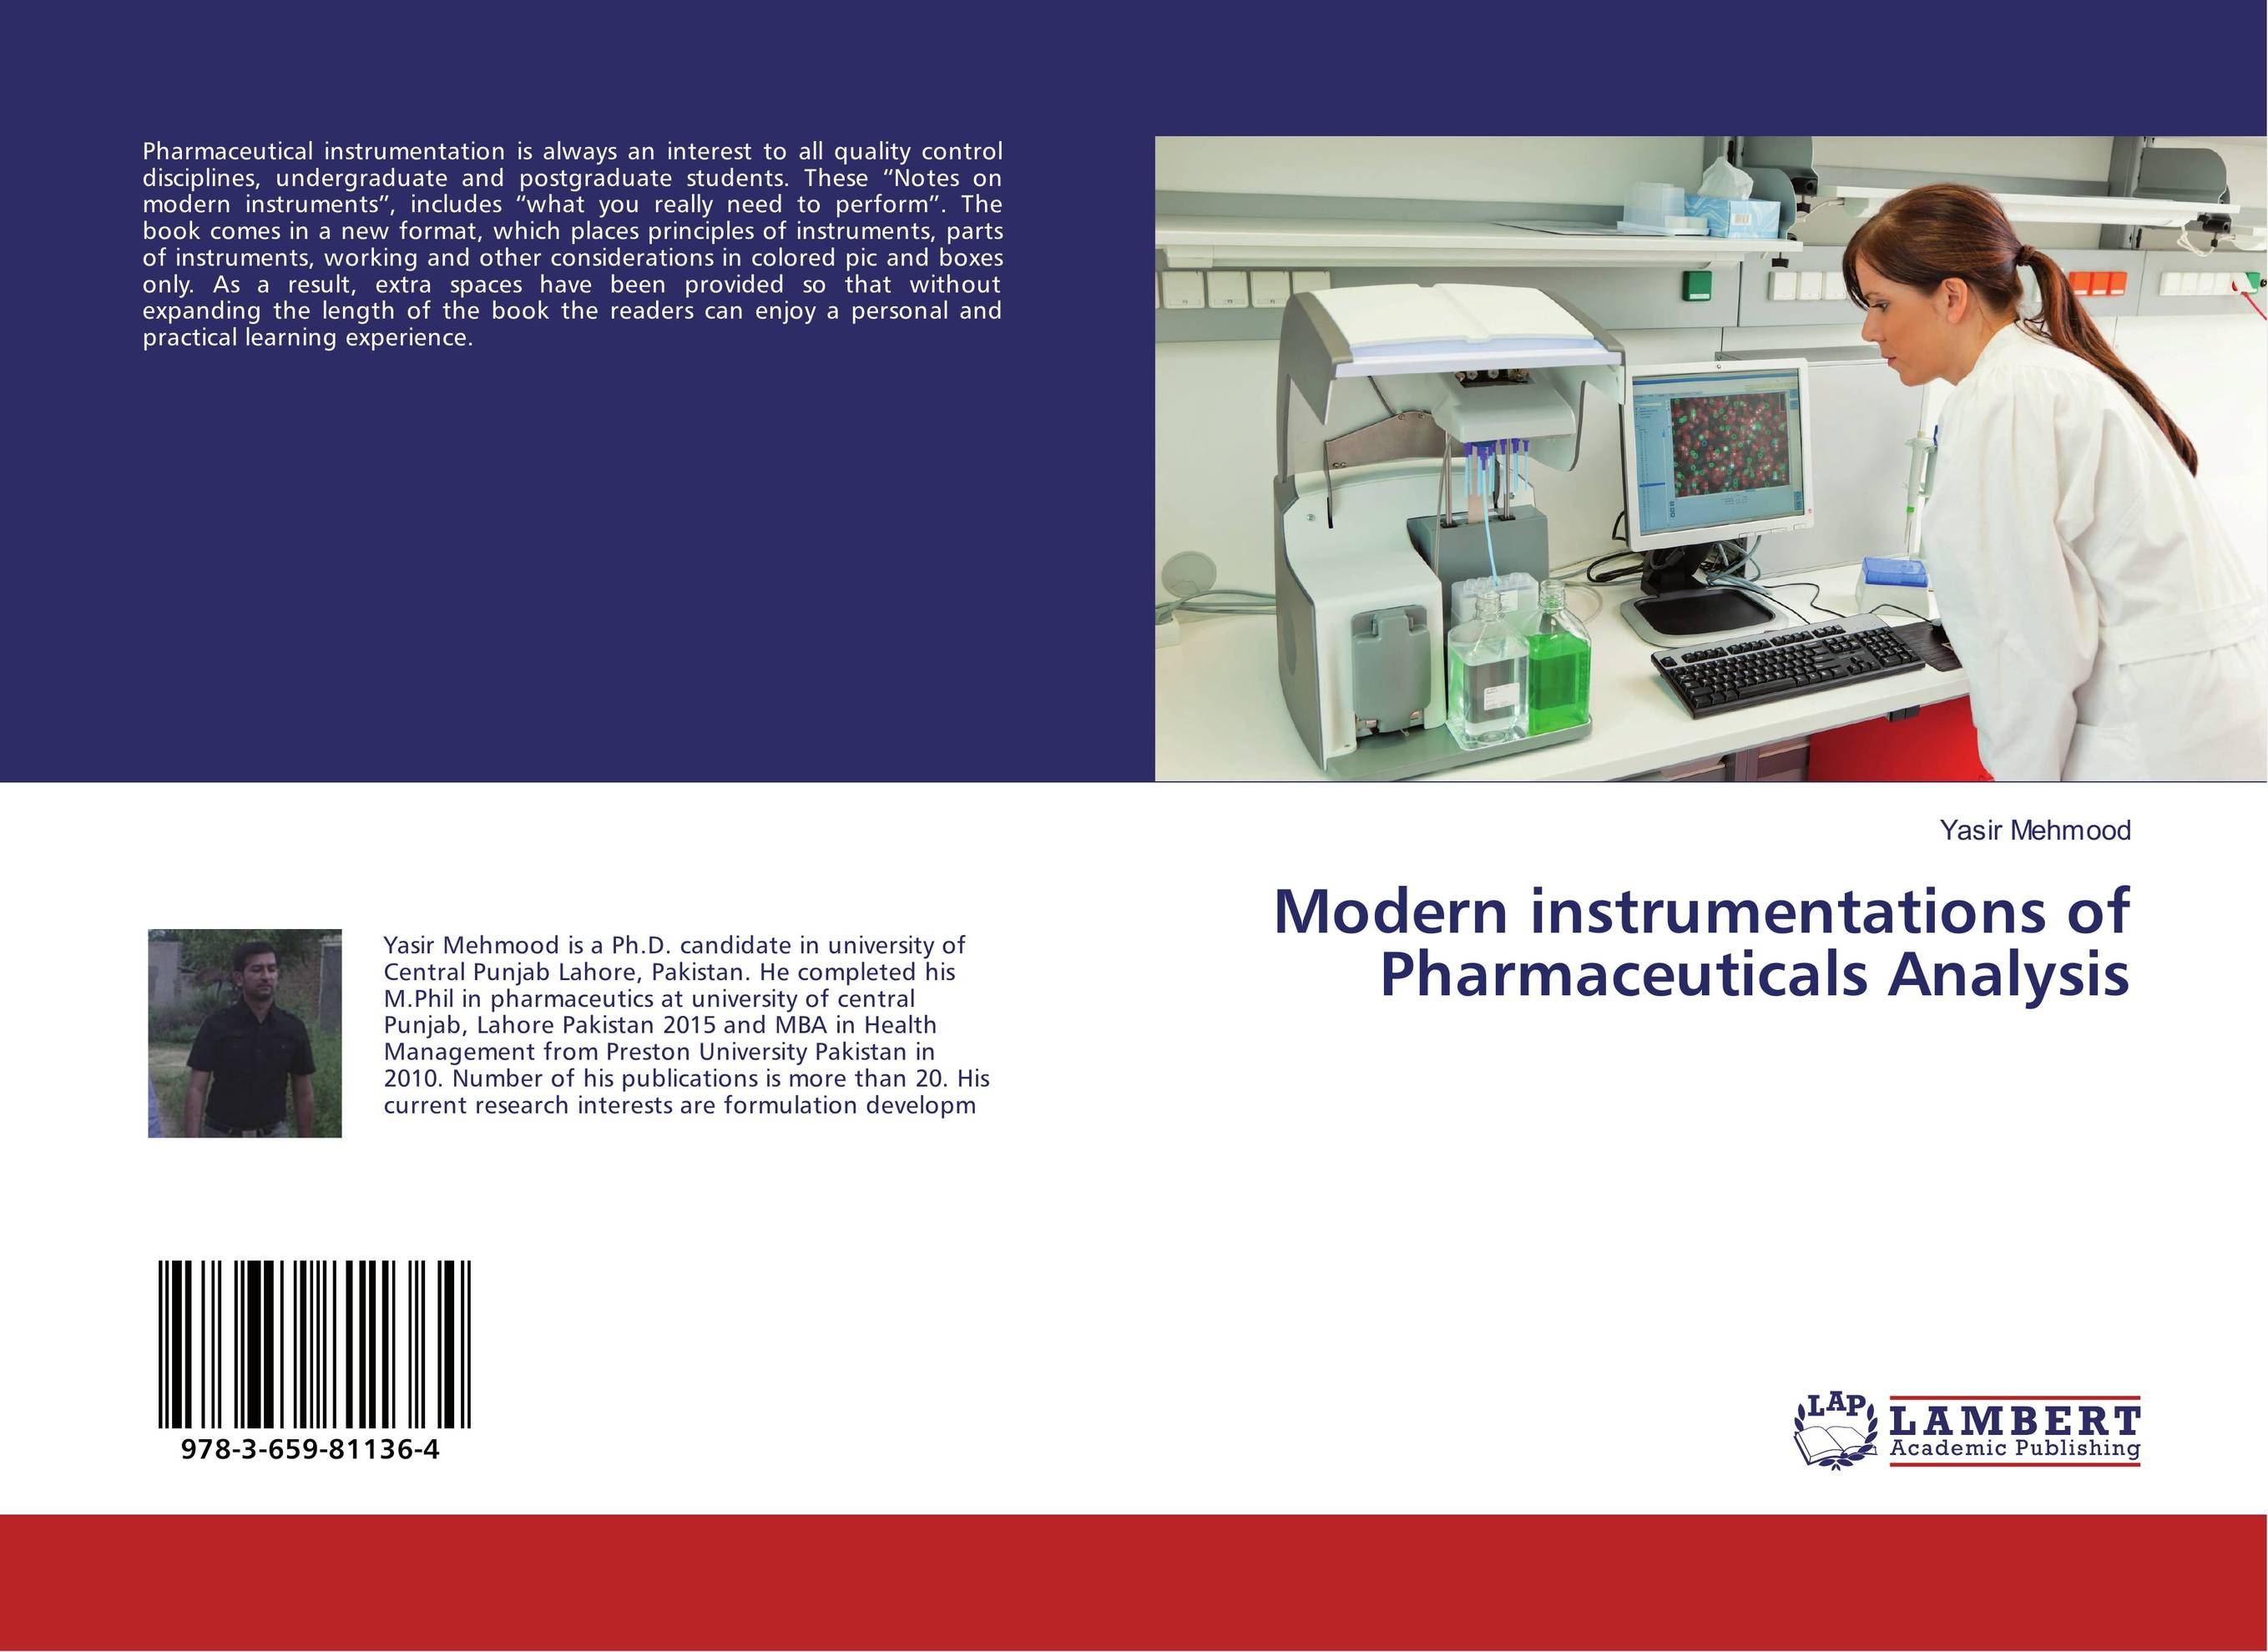 Modern instrumentations of Pharmaceuticals Analysis